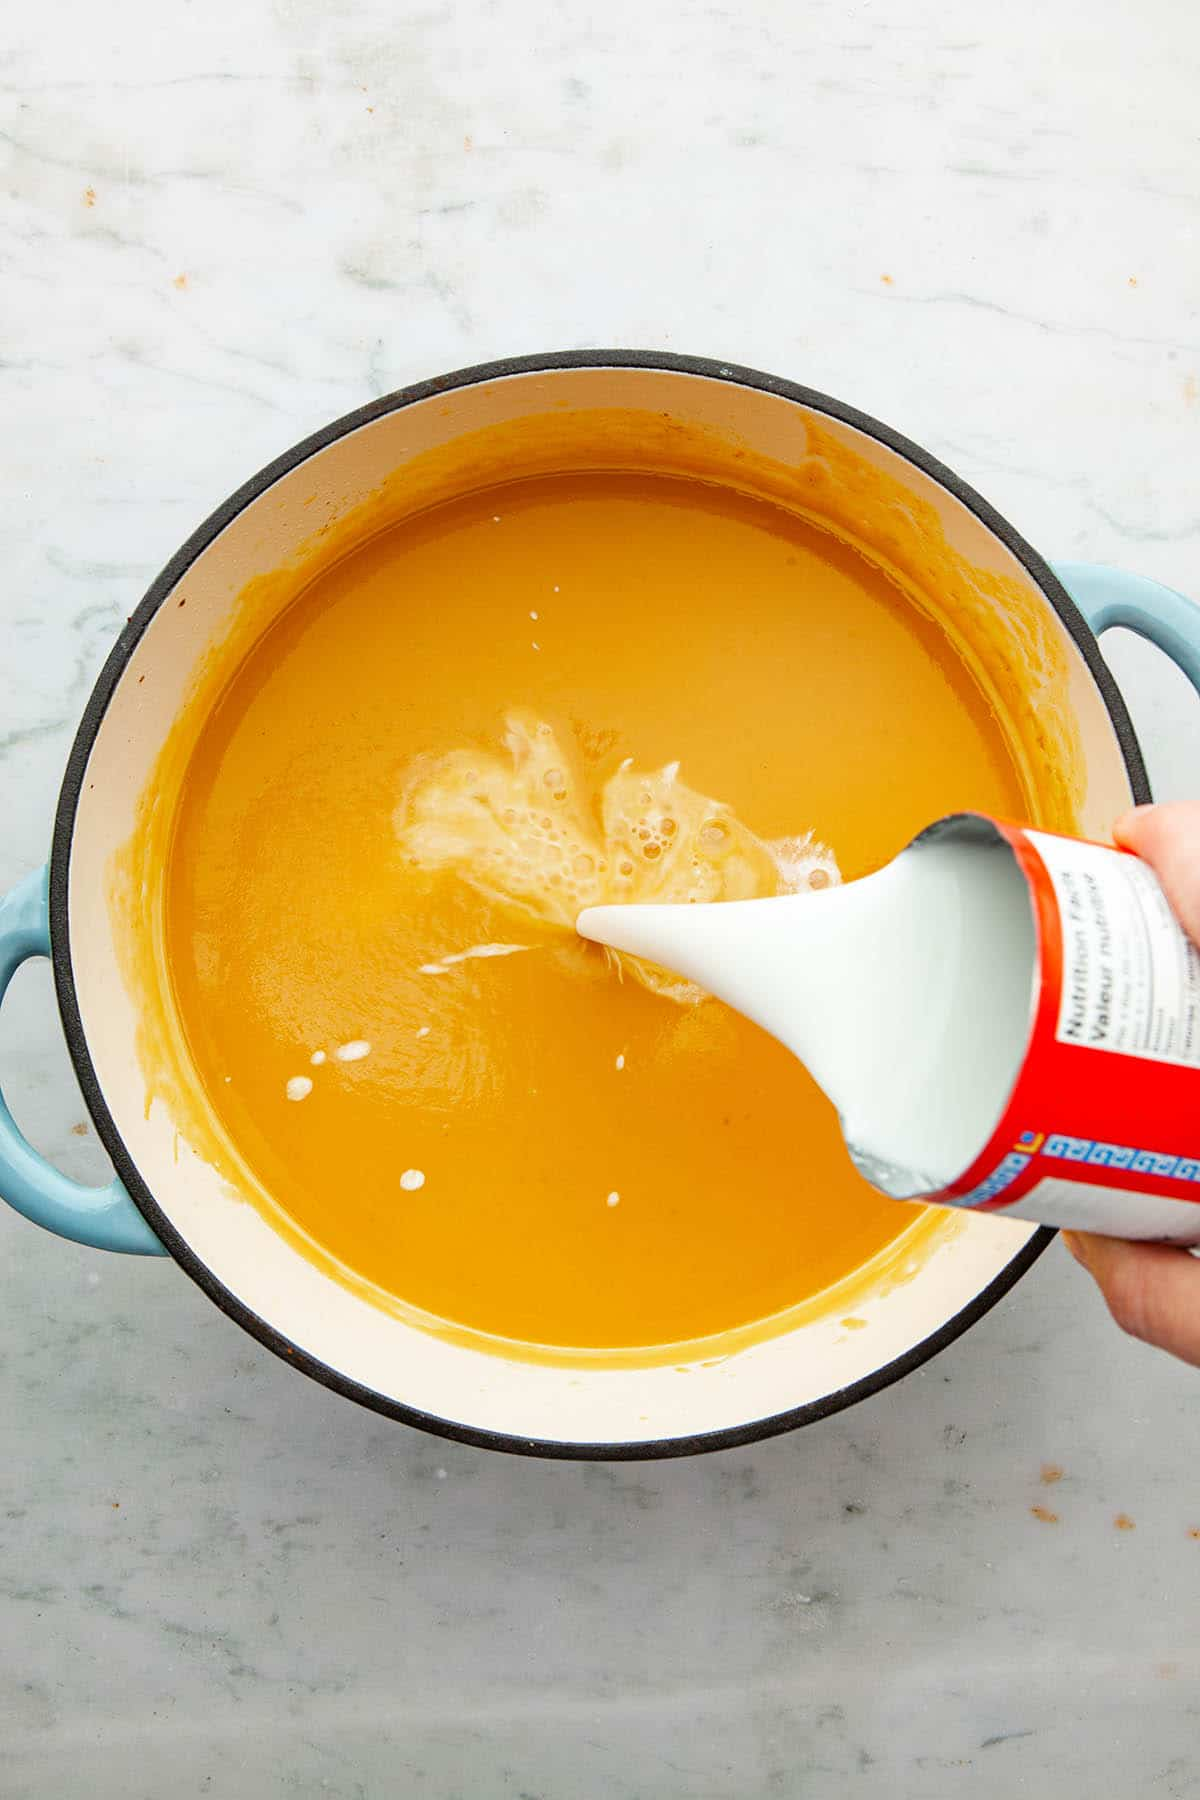 A hand pouring a can of coconut milk into a pot of puréed soup.